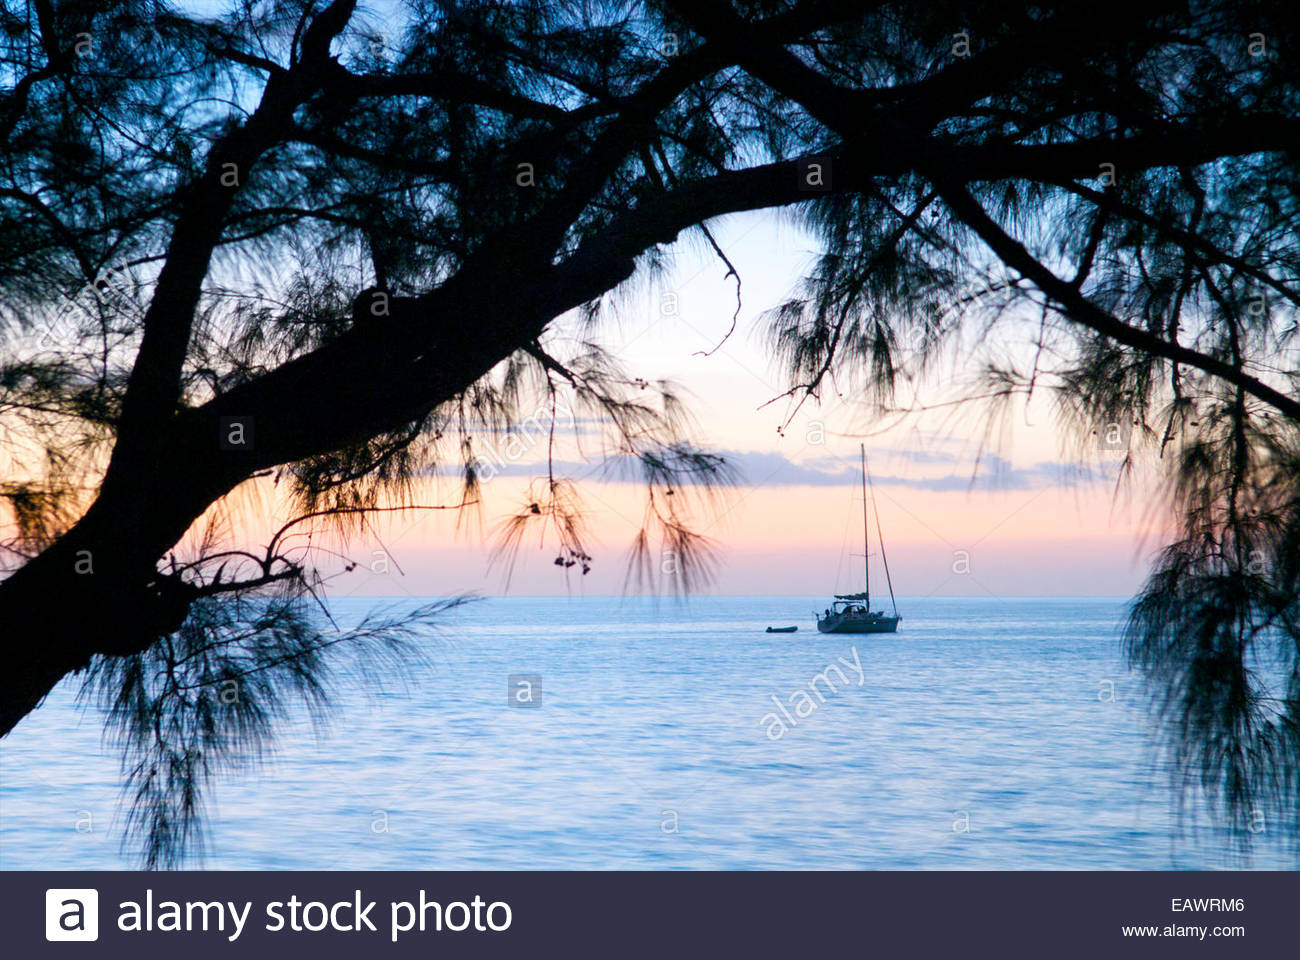 A yacht anchored in the calm waters of Pigeon Bay off Cat Island. Stock Photo